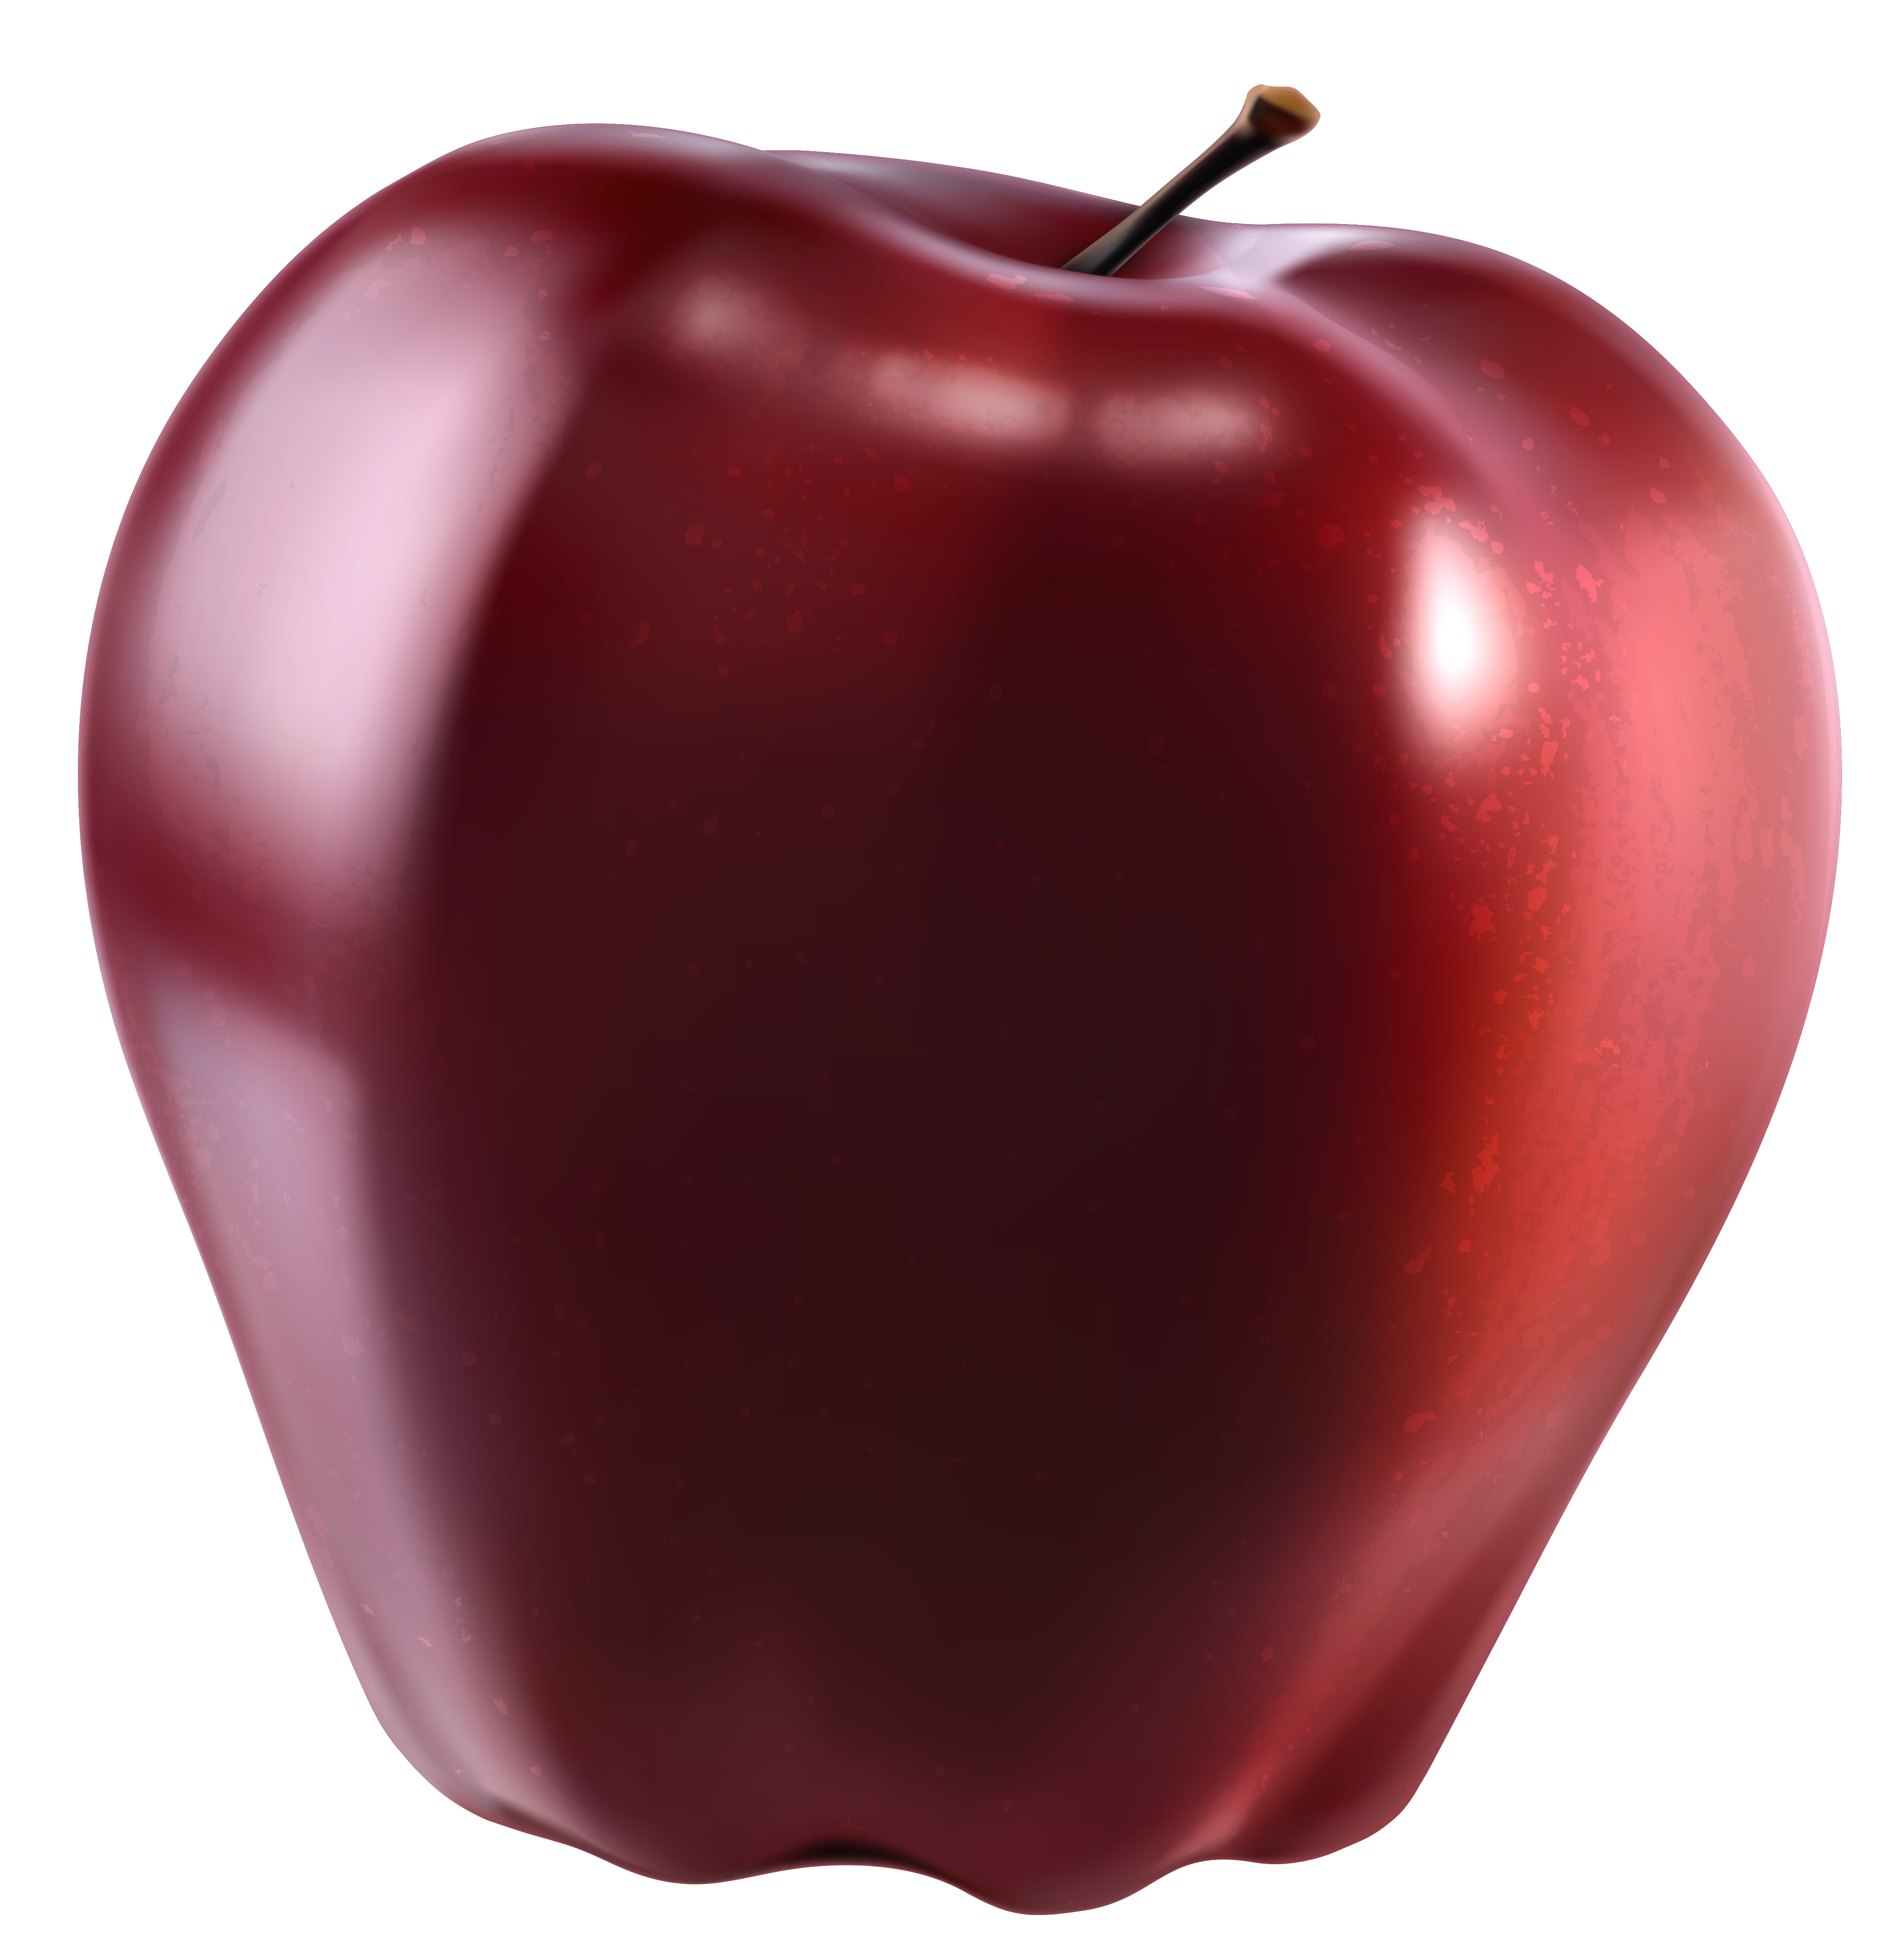 Apple colored clipart clip art free Apple Icon Image format Apple Color Emoji Icon - Red Apple PNG ... clip art free